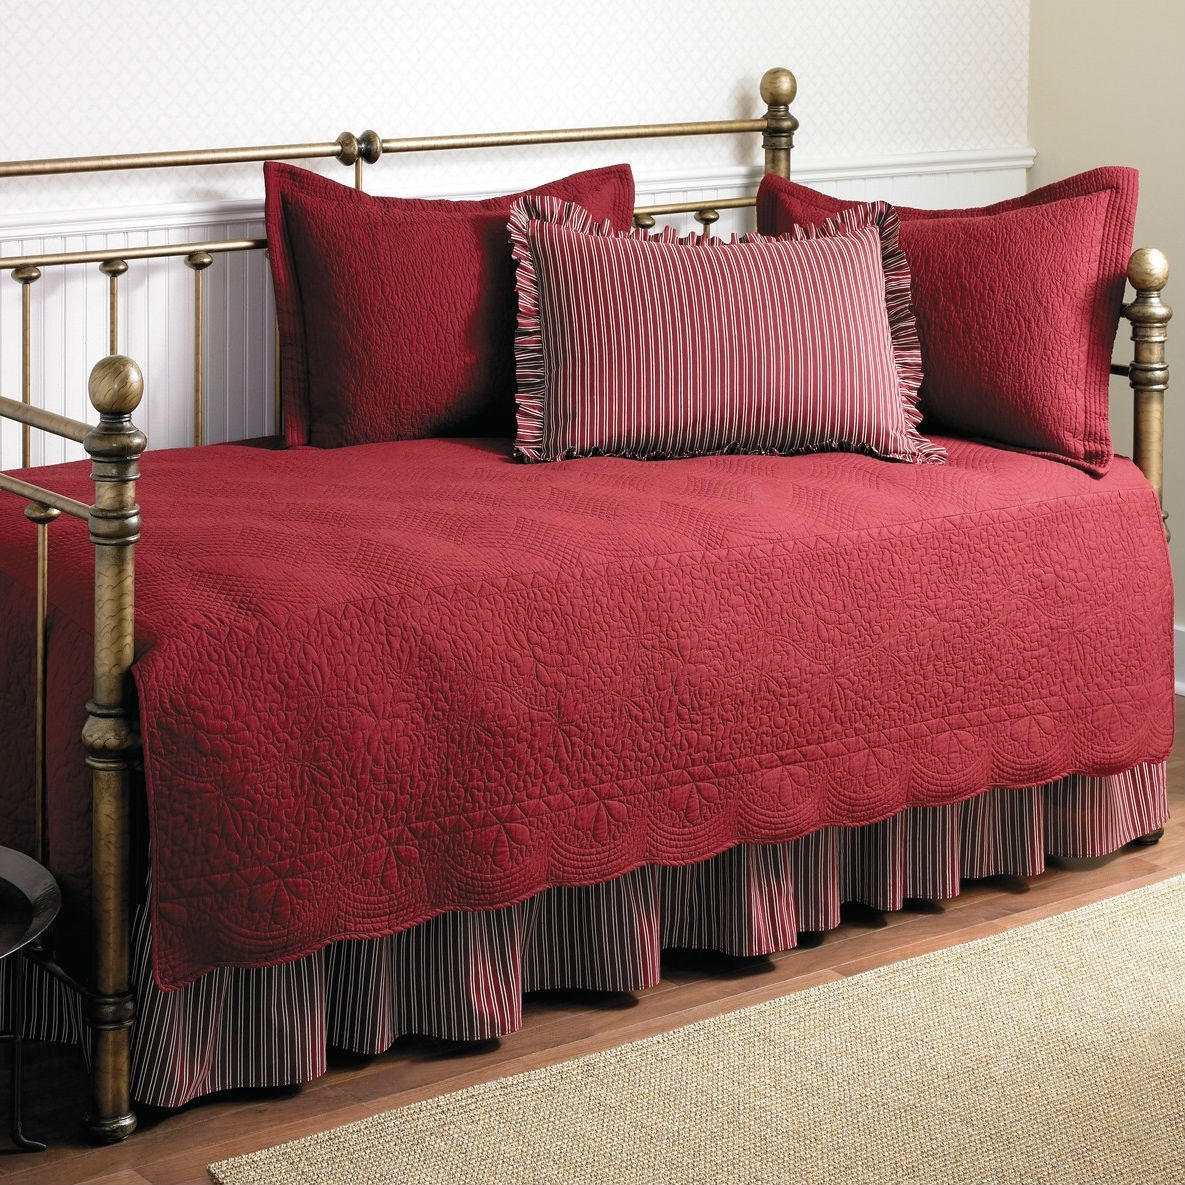 Twin Size 5 Piece Daybed Cover Ensemble From Hearts Attic